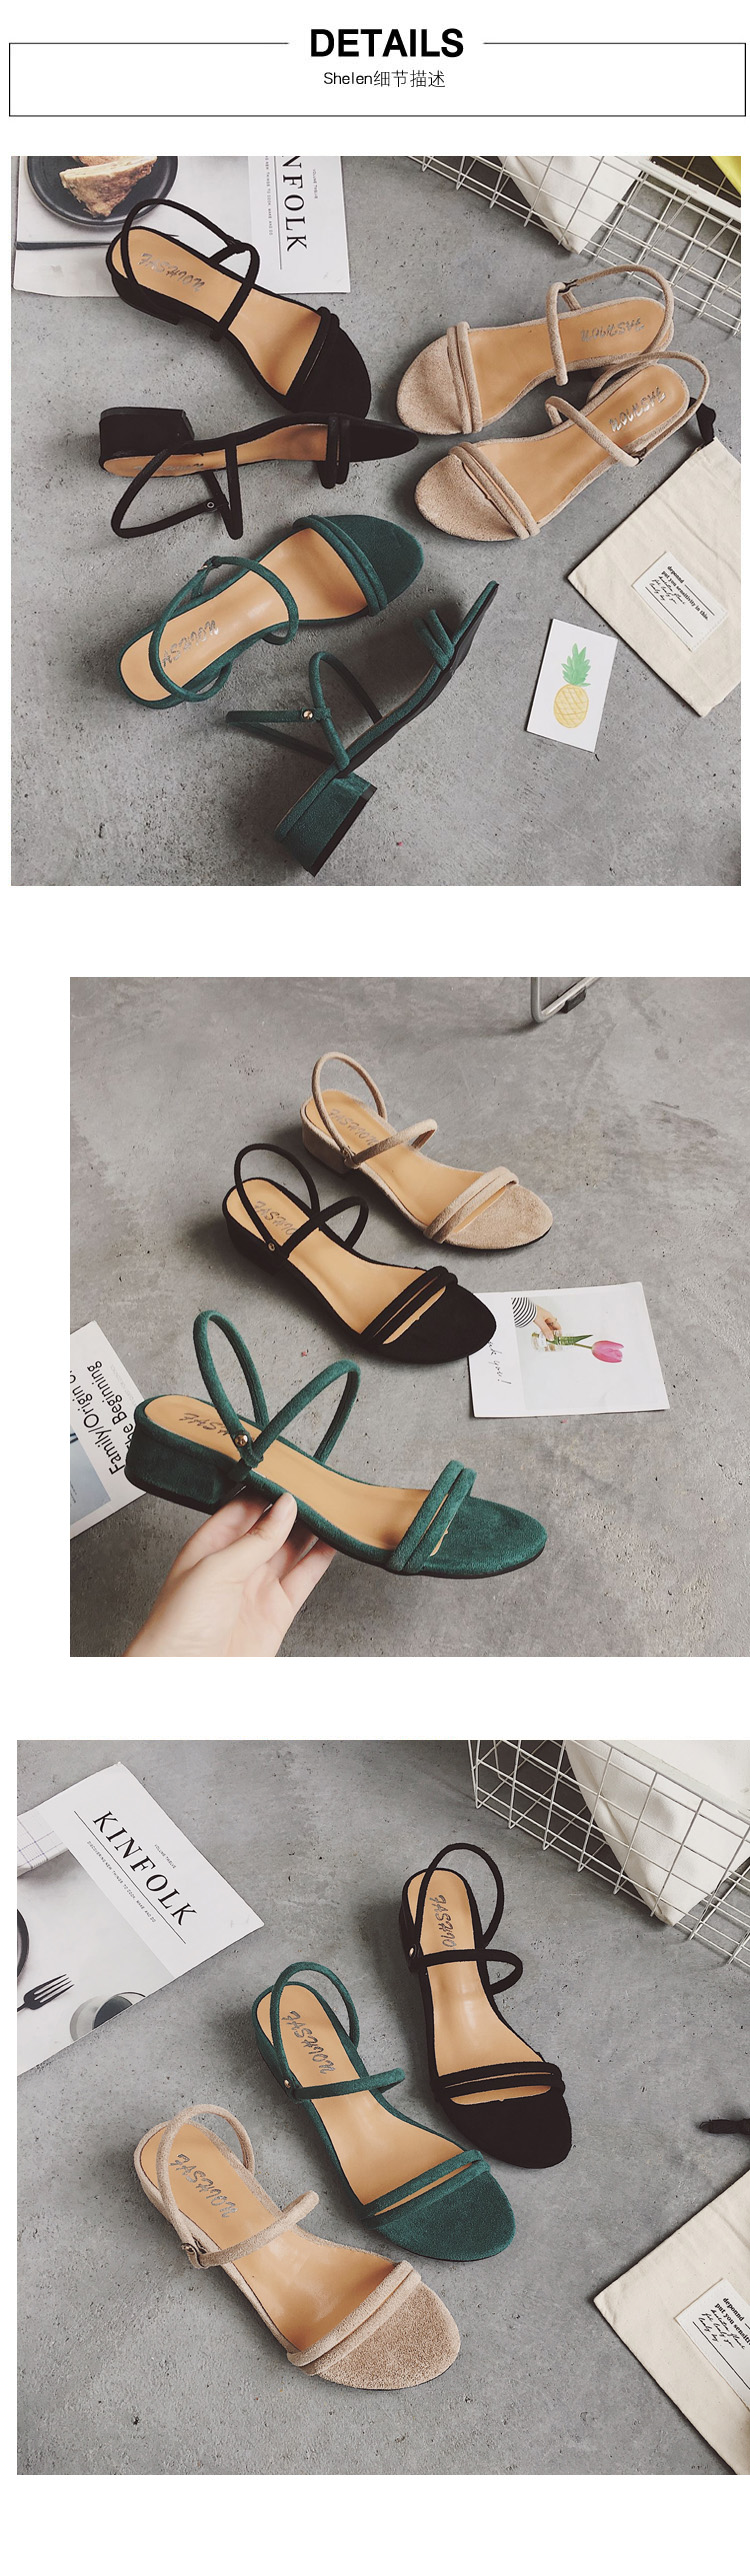 HTB1UC2HtQKWBuNjy1zjq6AOypXam new Flat outdoor slippers Sandals foot ring straps beaded Roman sandals fashion low slope with women's shoes low heel shoes x69